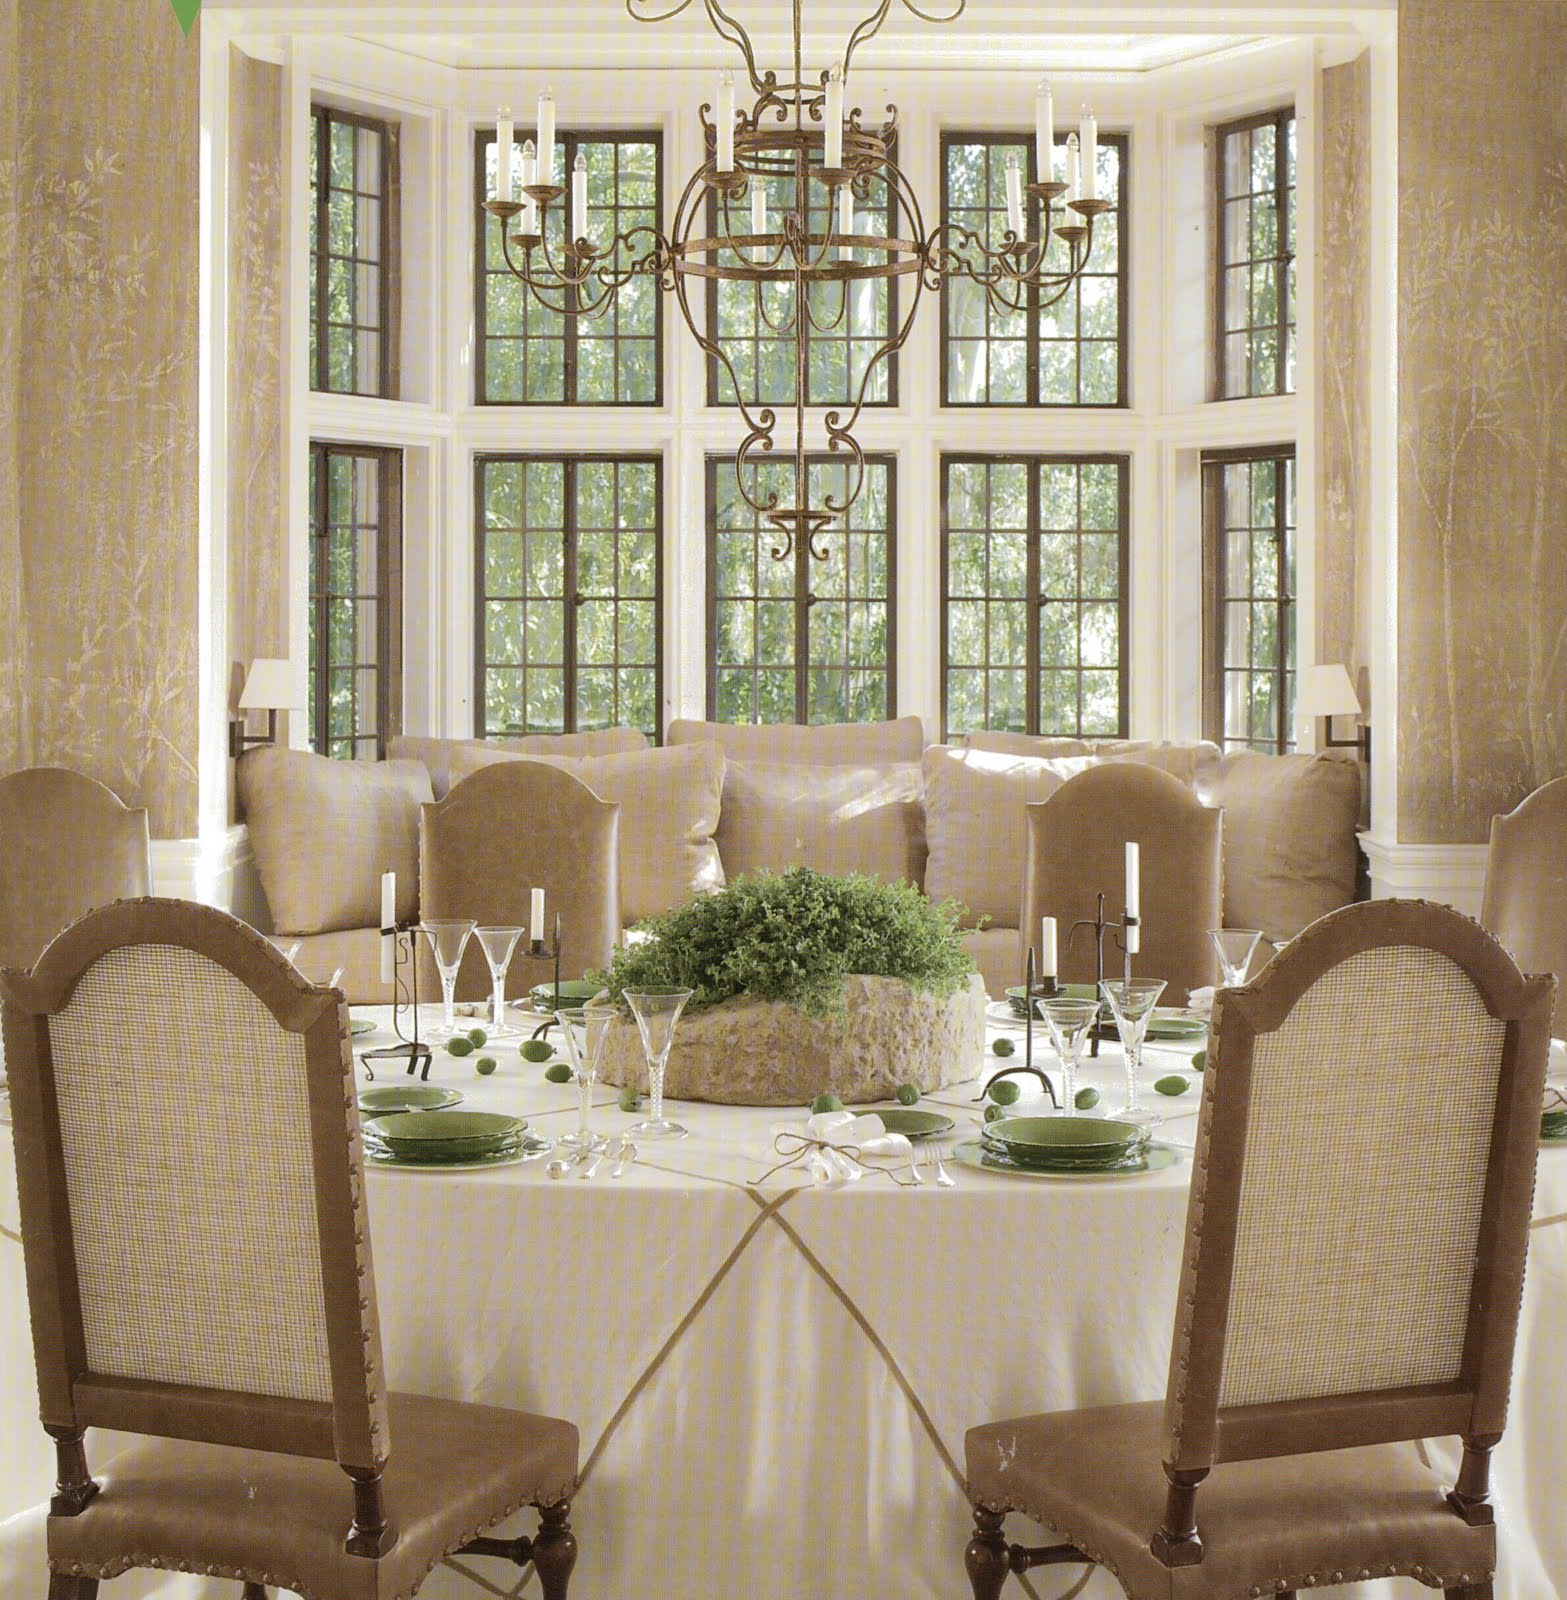 5 Curtain Ideas For Bay Windows Curtains Up Blog: P.S. I Love This...: Ideas For Dining Room